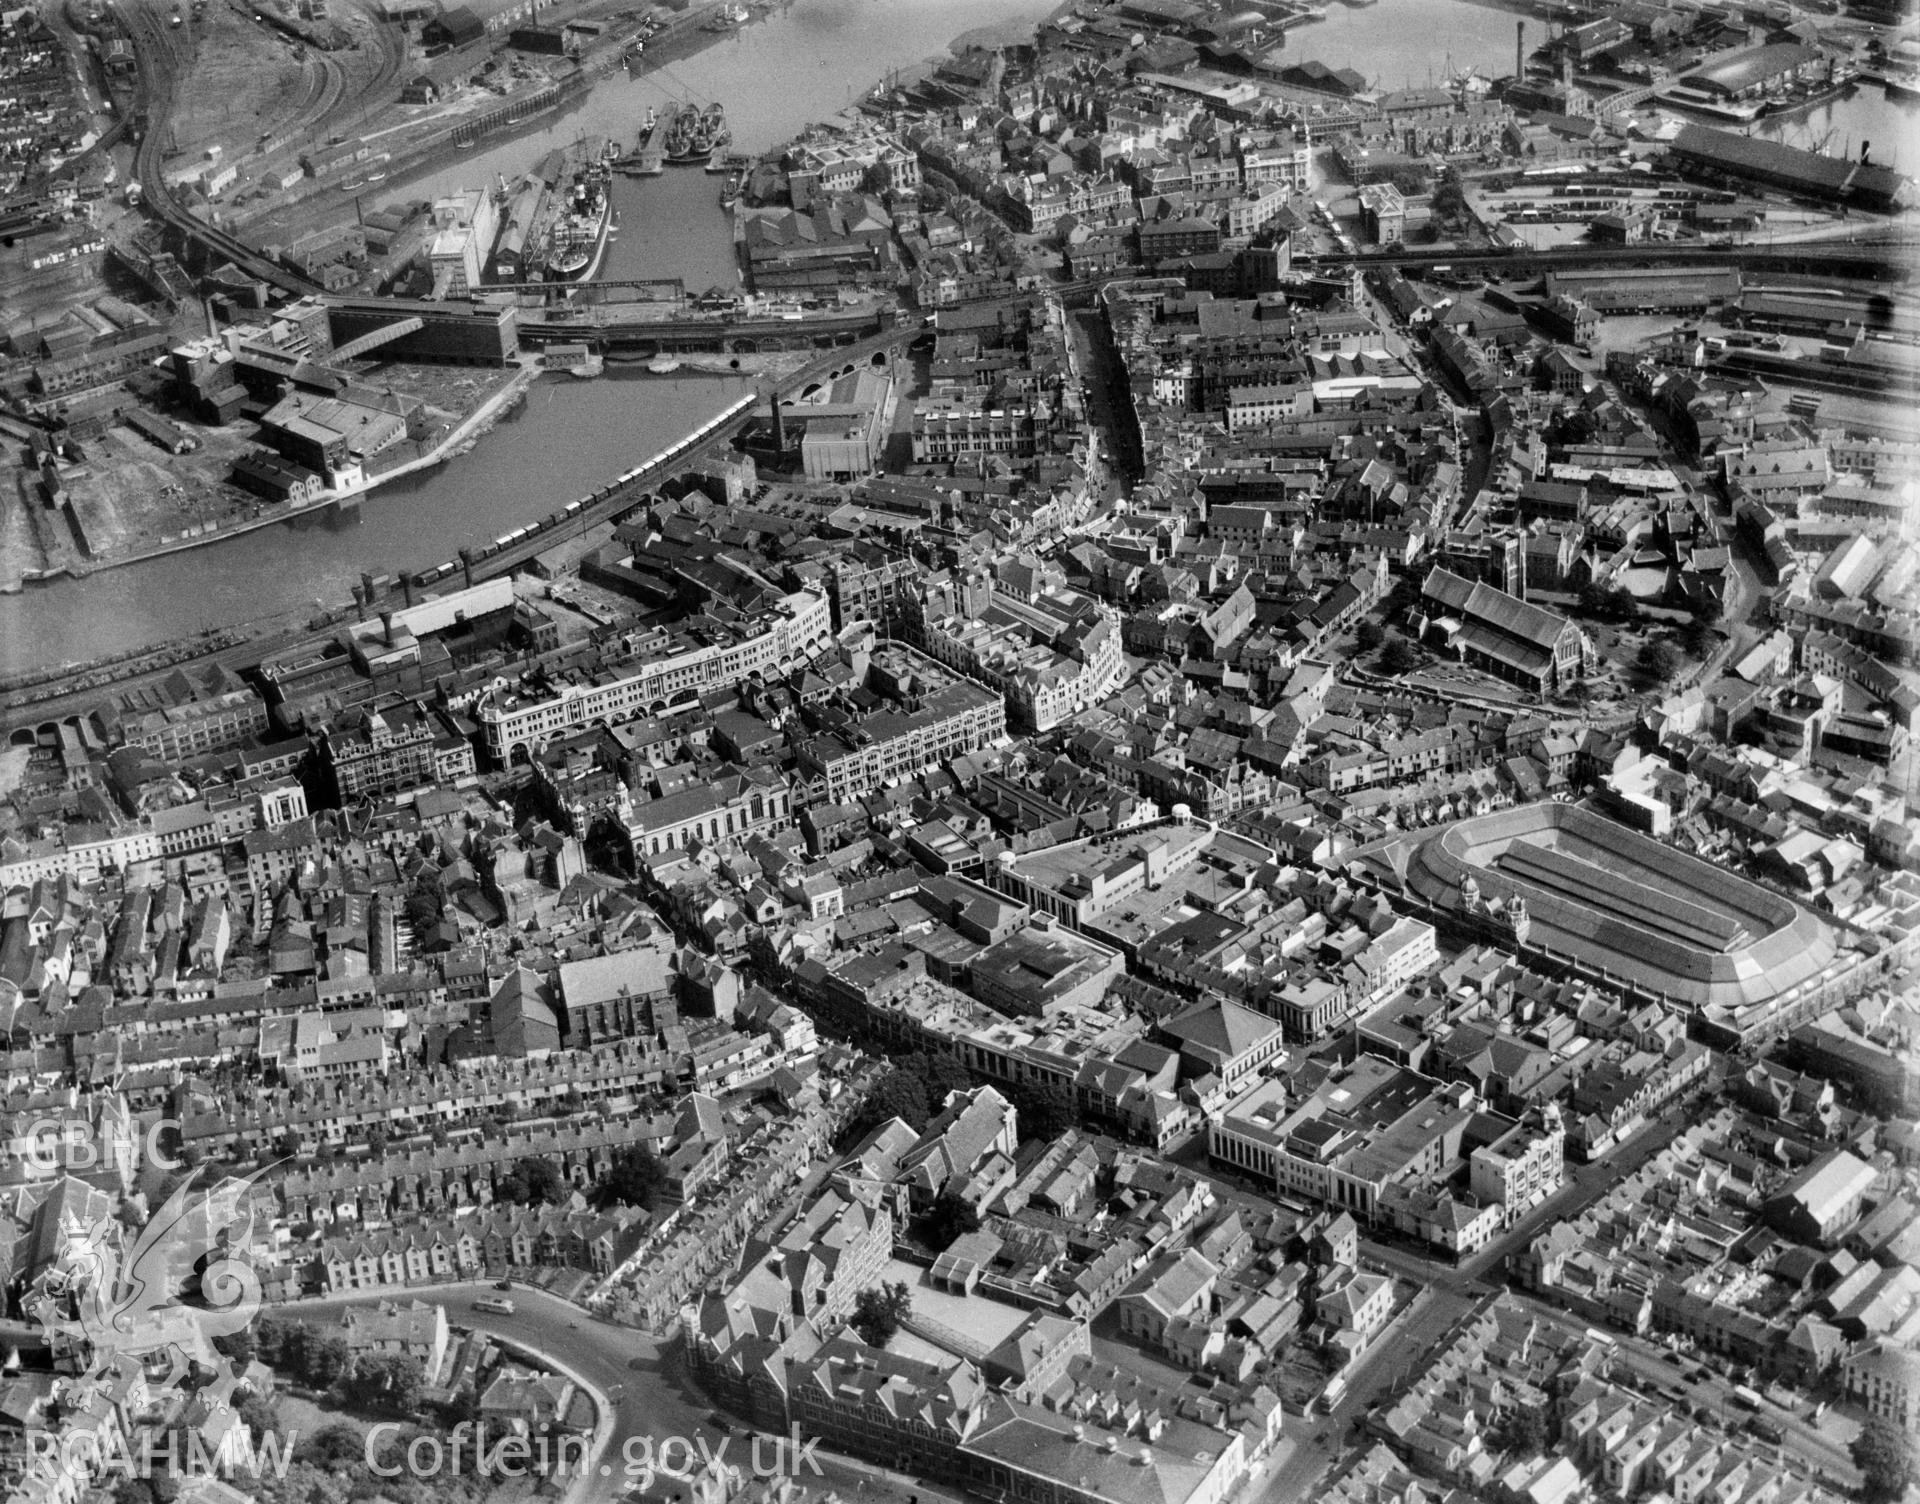 View of central Swansea showing covered market, oblique aerial view. 5?x4? black and white glass plate negative.